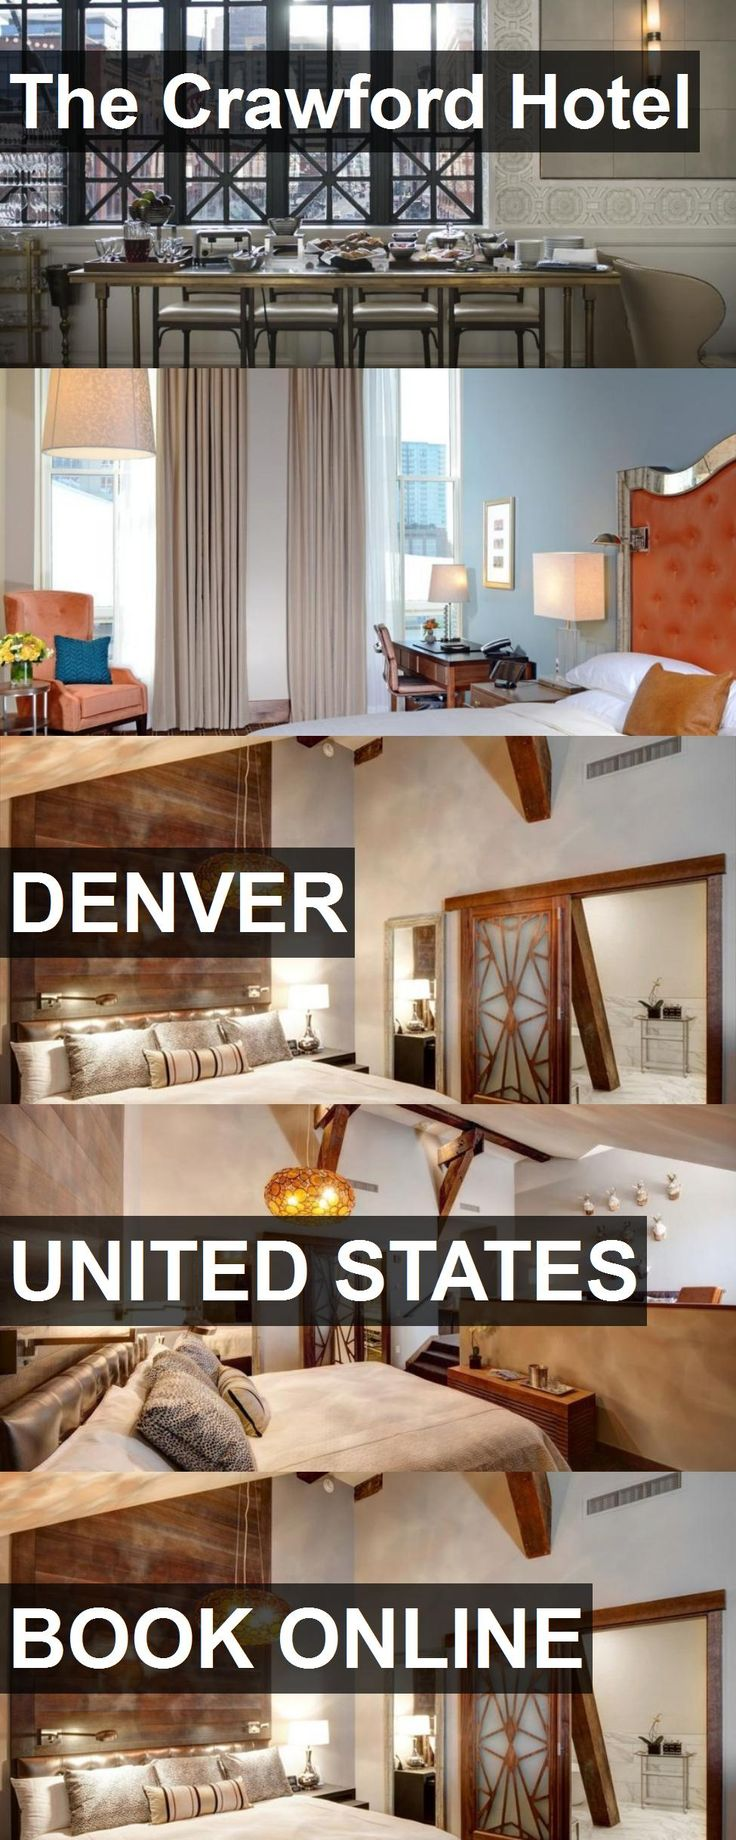 The Crawford Hotel in Denver, United States. For more information, photos, reviews and best prices please follow the link. #UnitedStates #Denver #travel #vacation #hotel